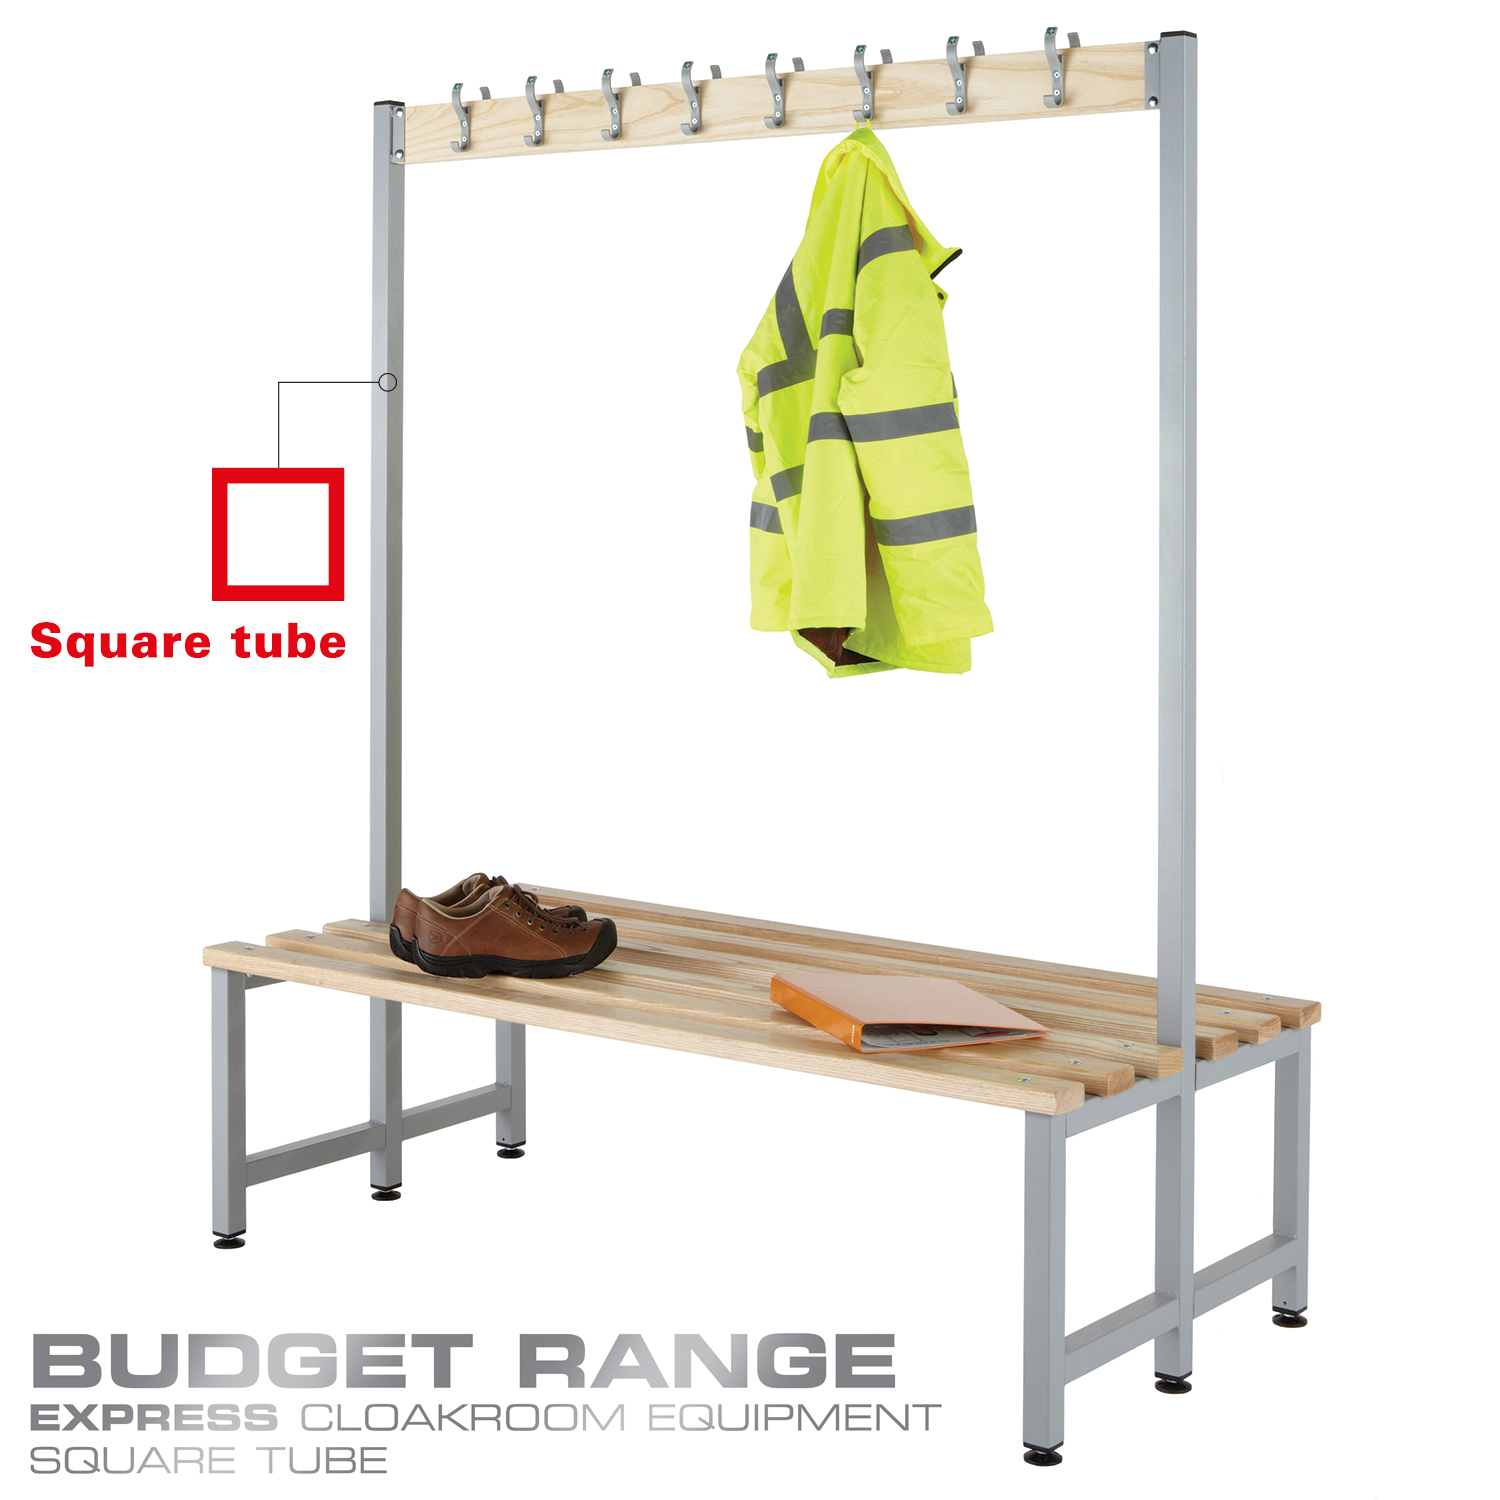 Probe cloakroom wood bench double sided with hooks in your budget range